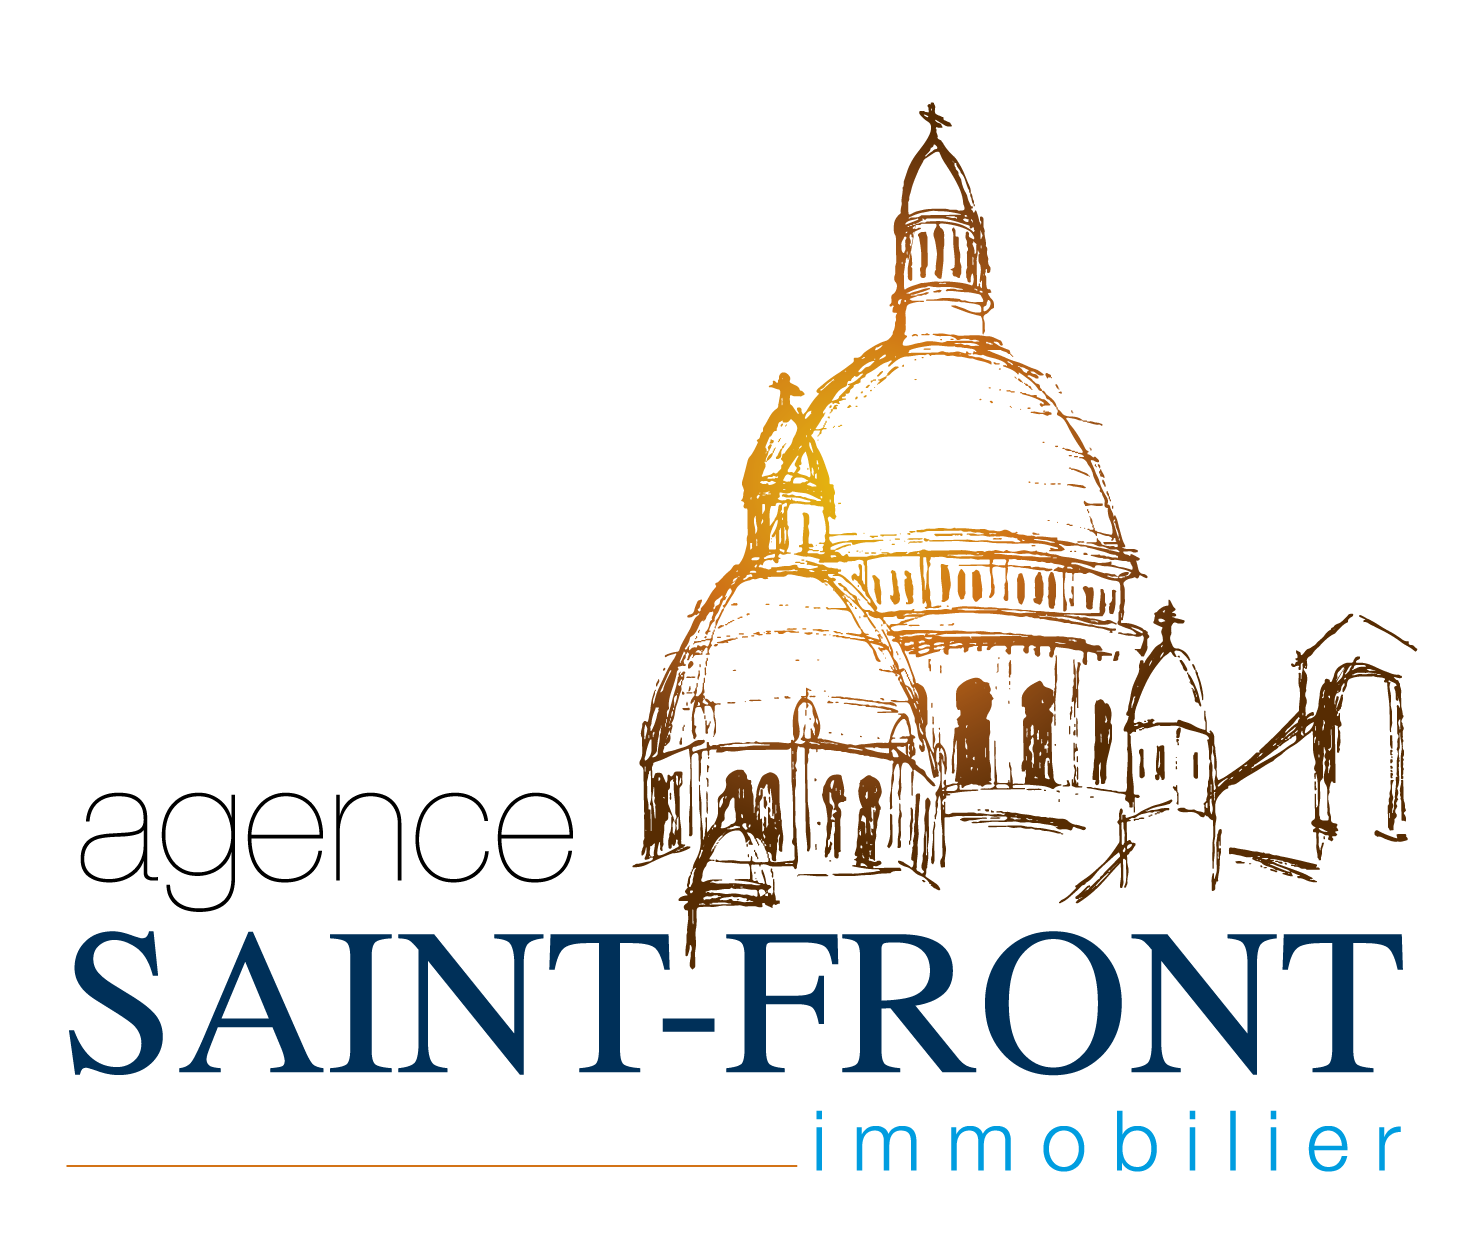 Saint front immobilier agence immobili re p rigueux for Agence immobiliere 01